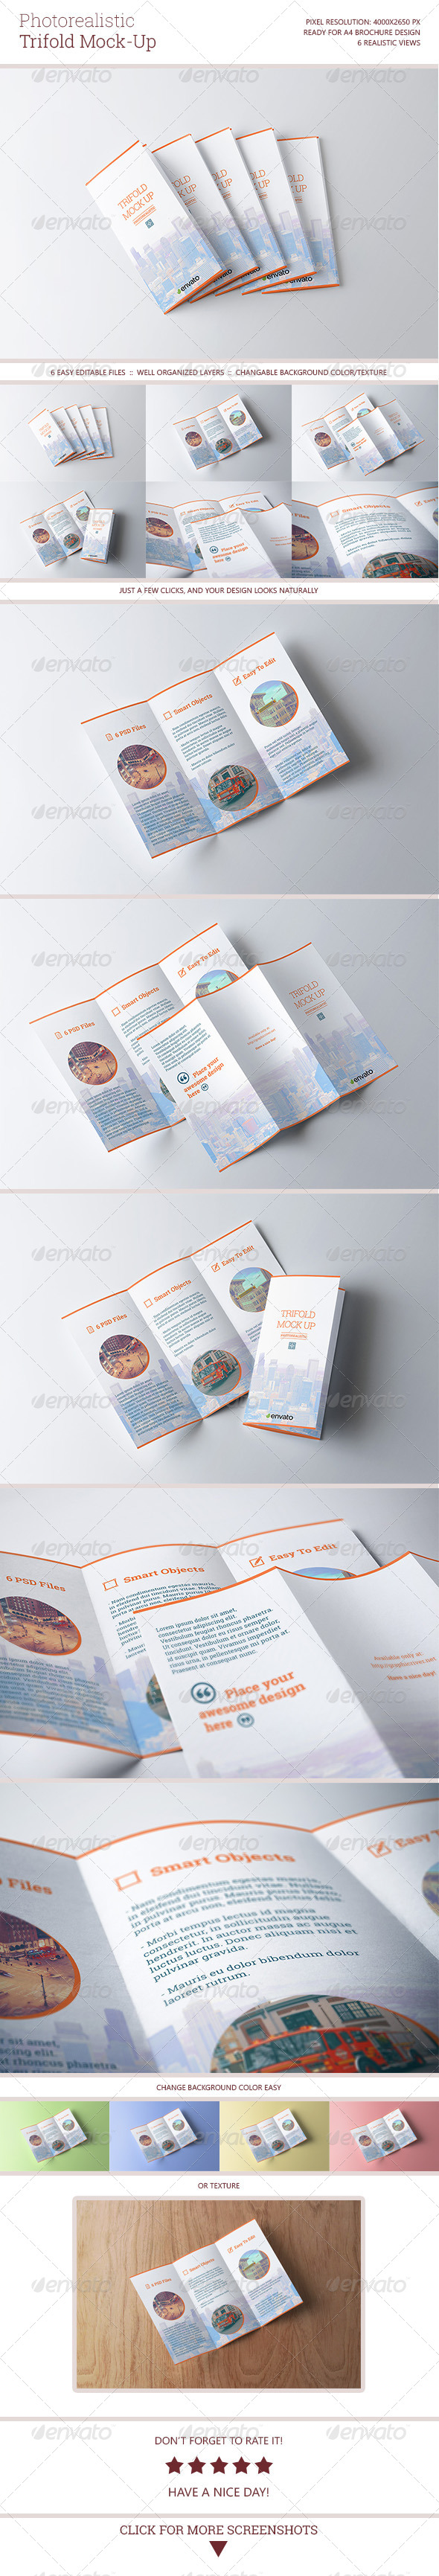 GraphicRiver Photorealistic Trifold Mock-Up 5205909